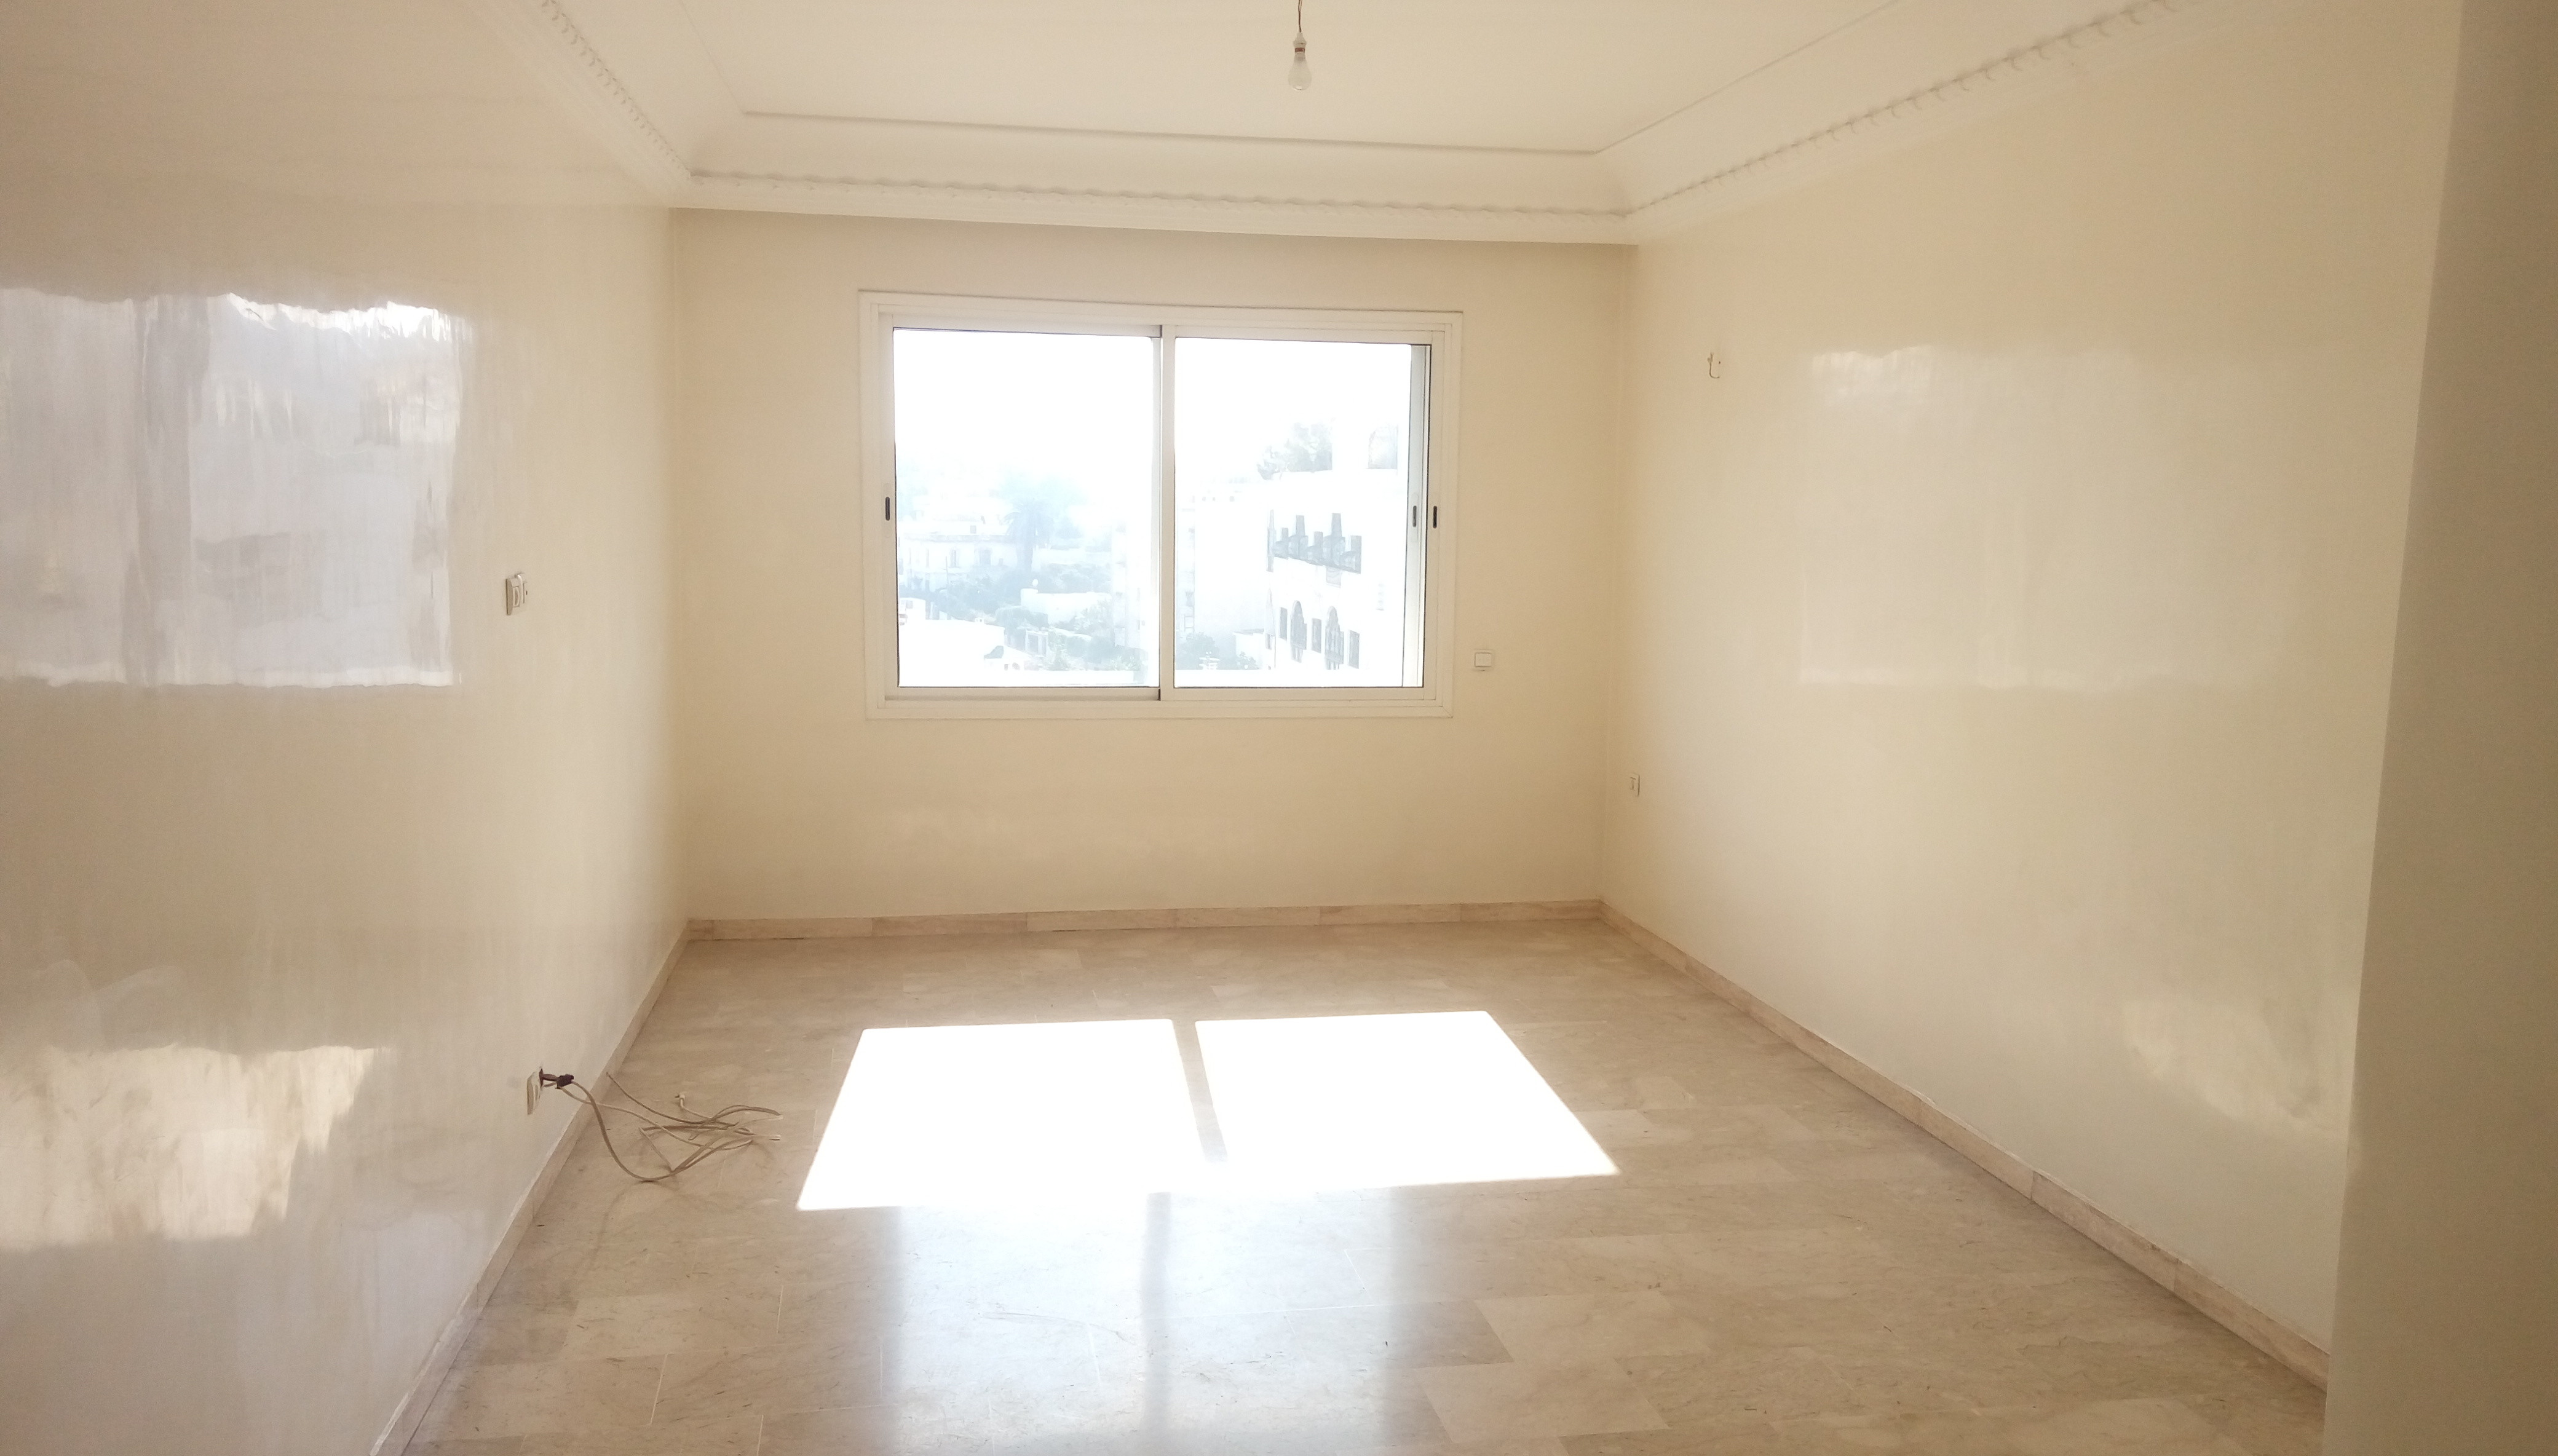 Location <strong>Appartement</strong> Casablanca Mers Sultan <strong>120 m2</strong>